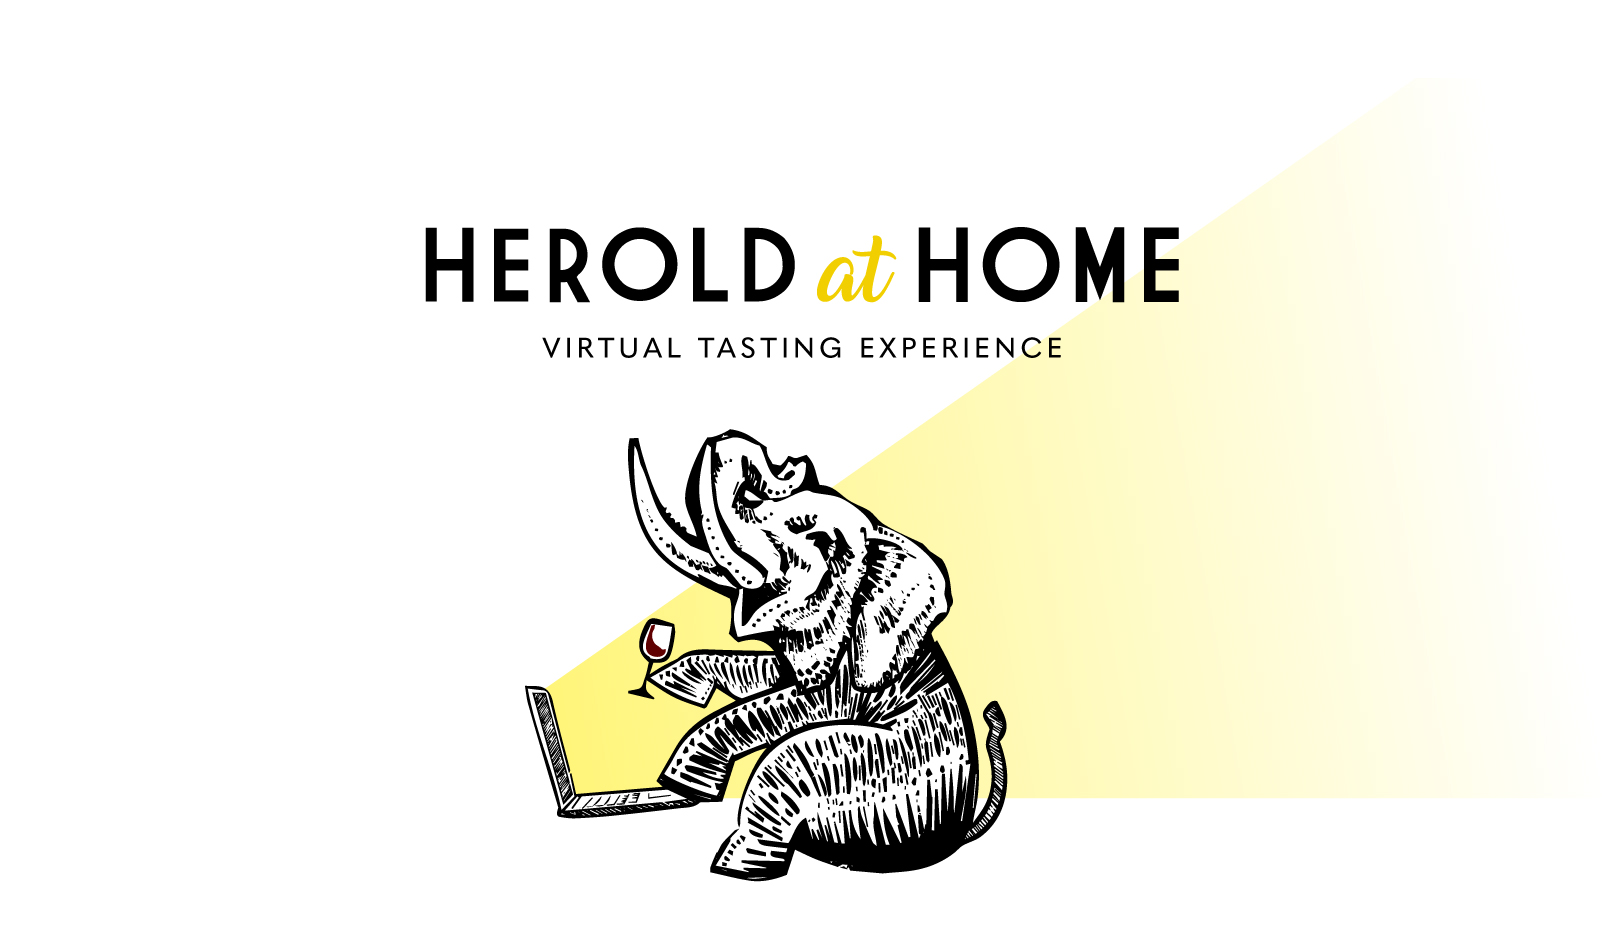 Herold at Home Virtual Tasting Experience